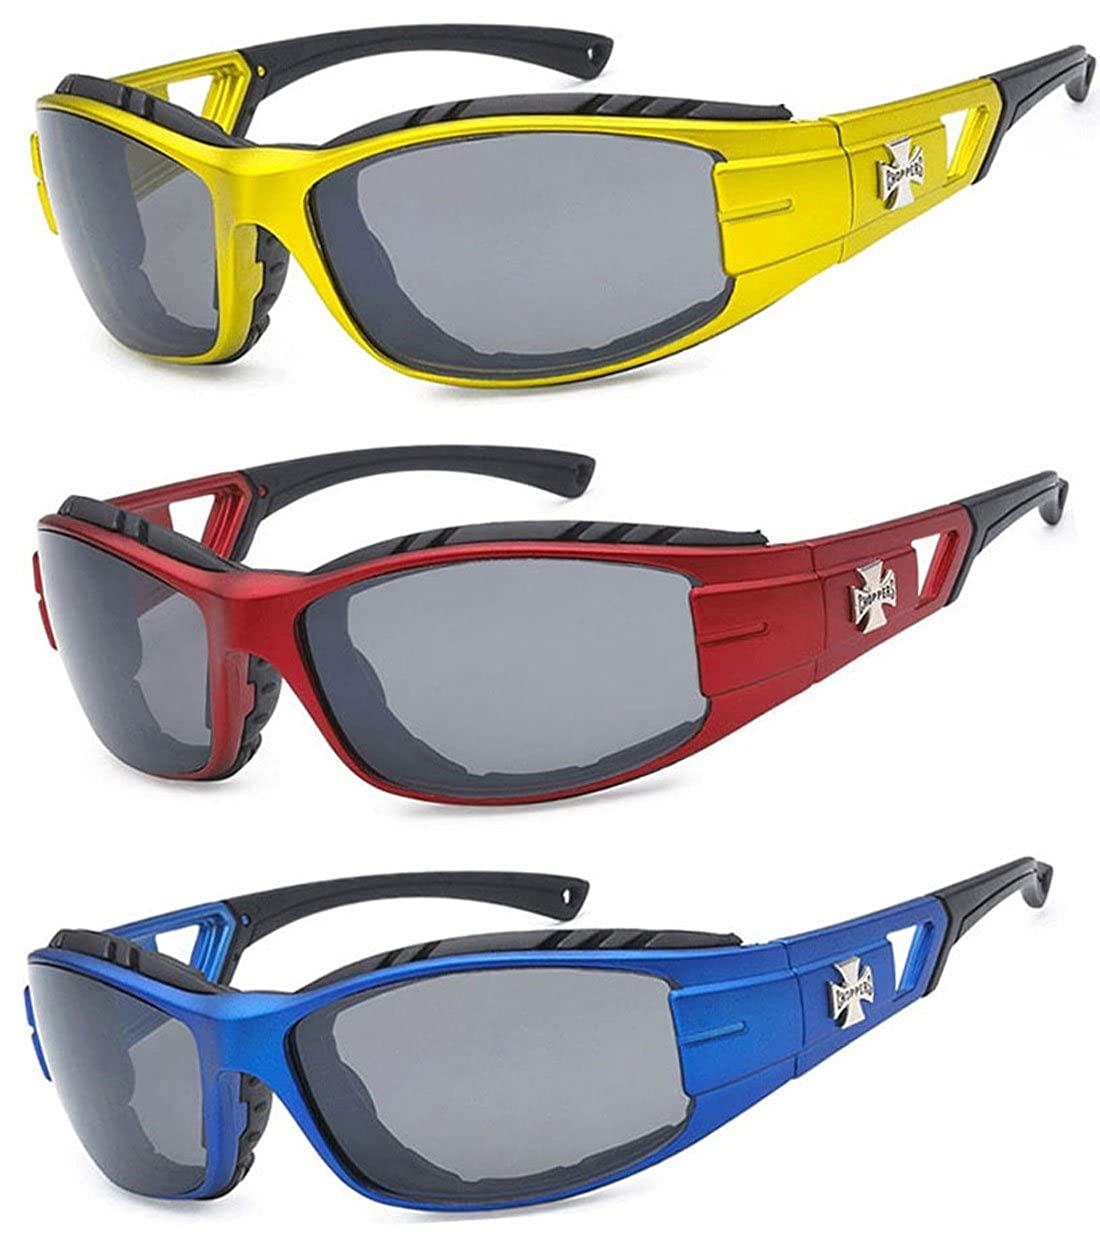 fbaace21fd Amazon.com  3 Pairs Choppers Padded Foam Wind Resistant Riding Sunglasses  (Blue Black Yellow)  Clothing